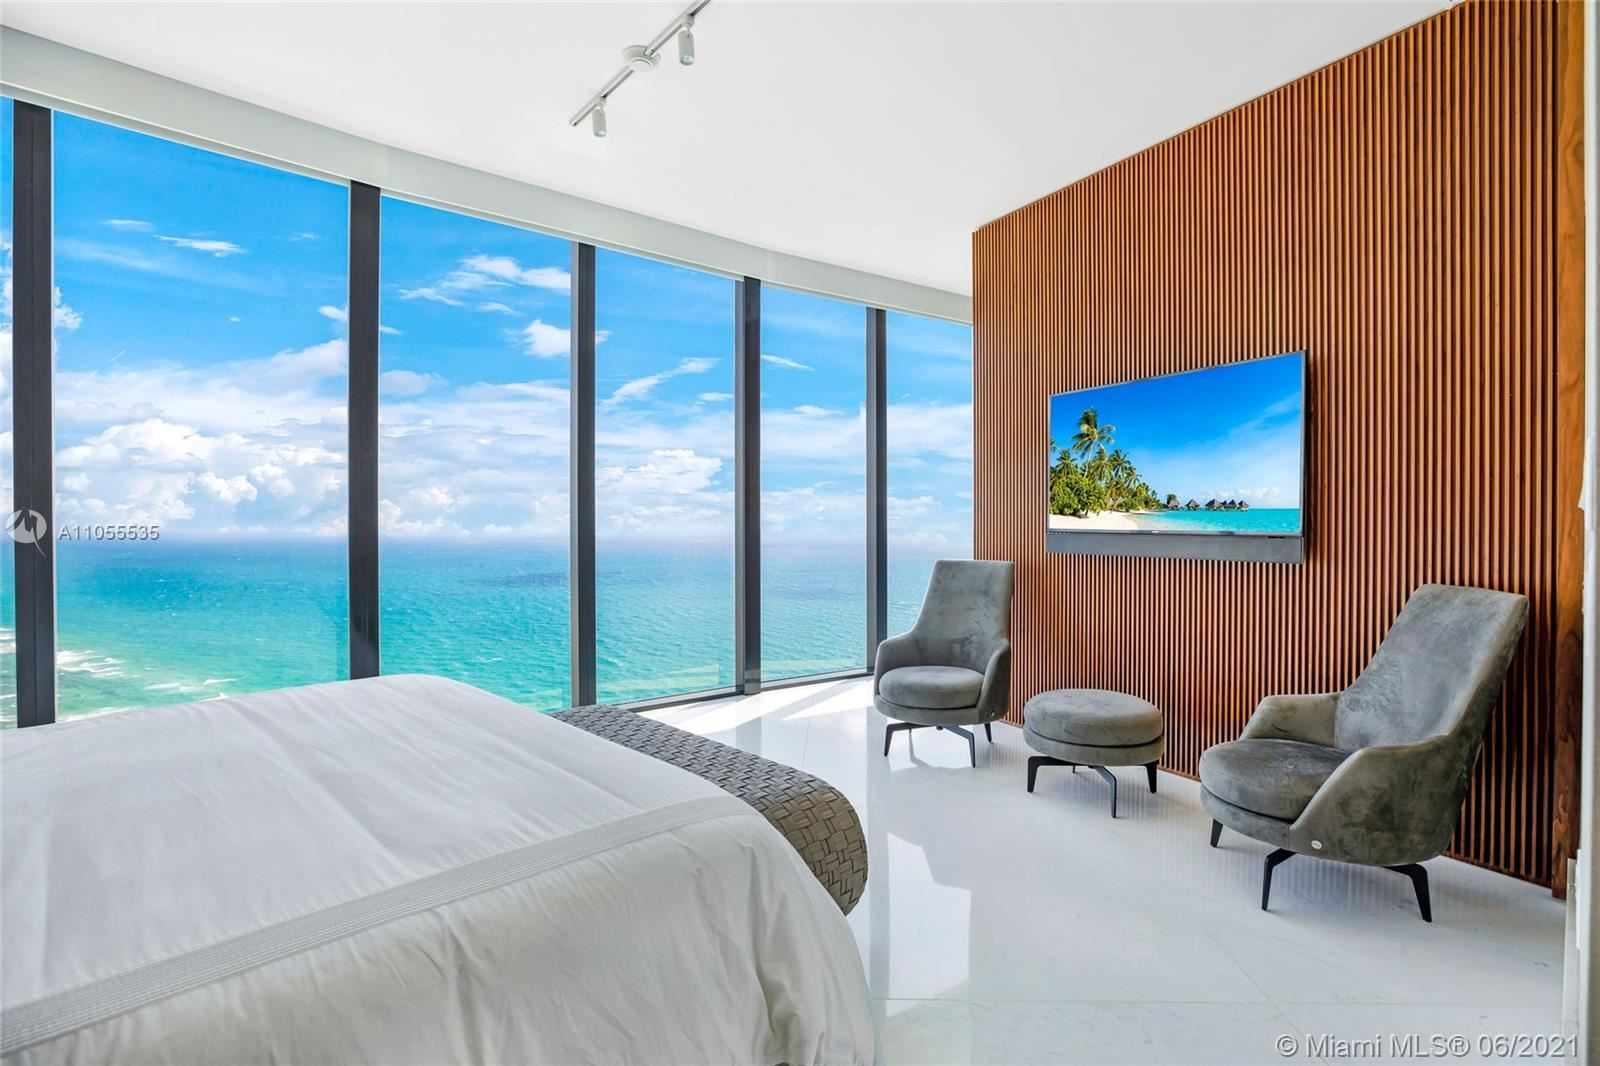 18555 Collins Ave #4305, Sunny Isles, FL 33160 - #: A11055535